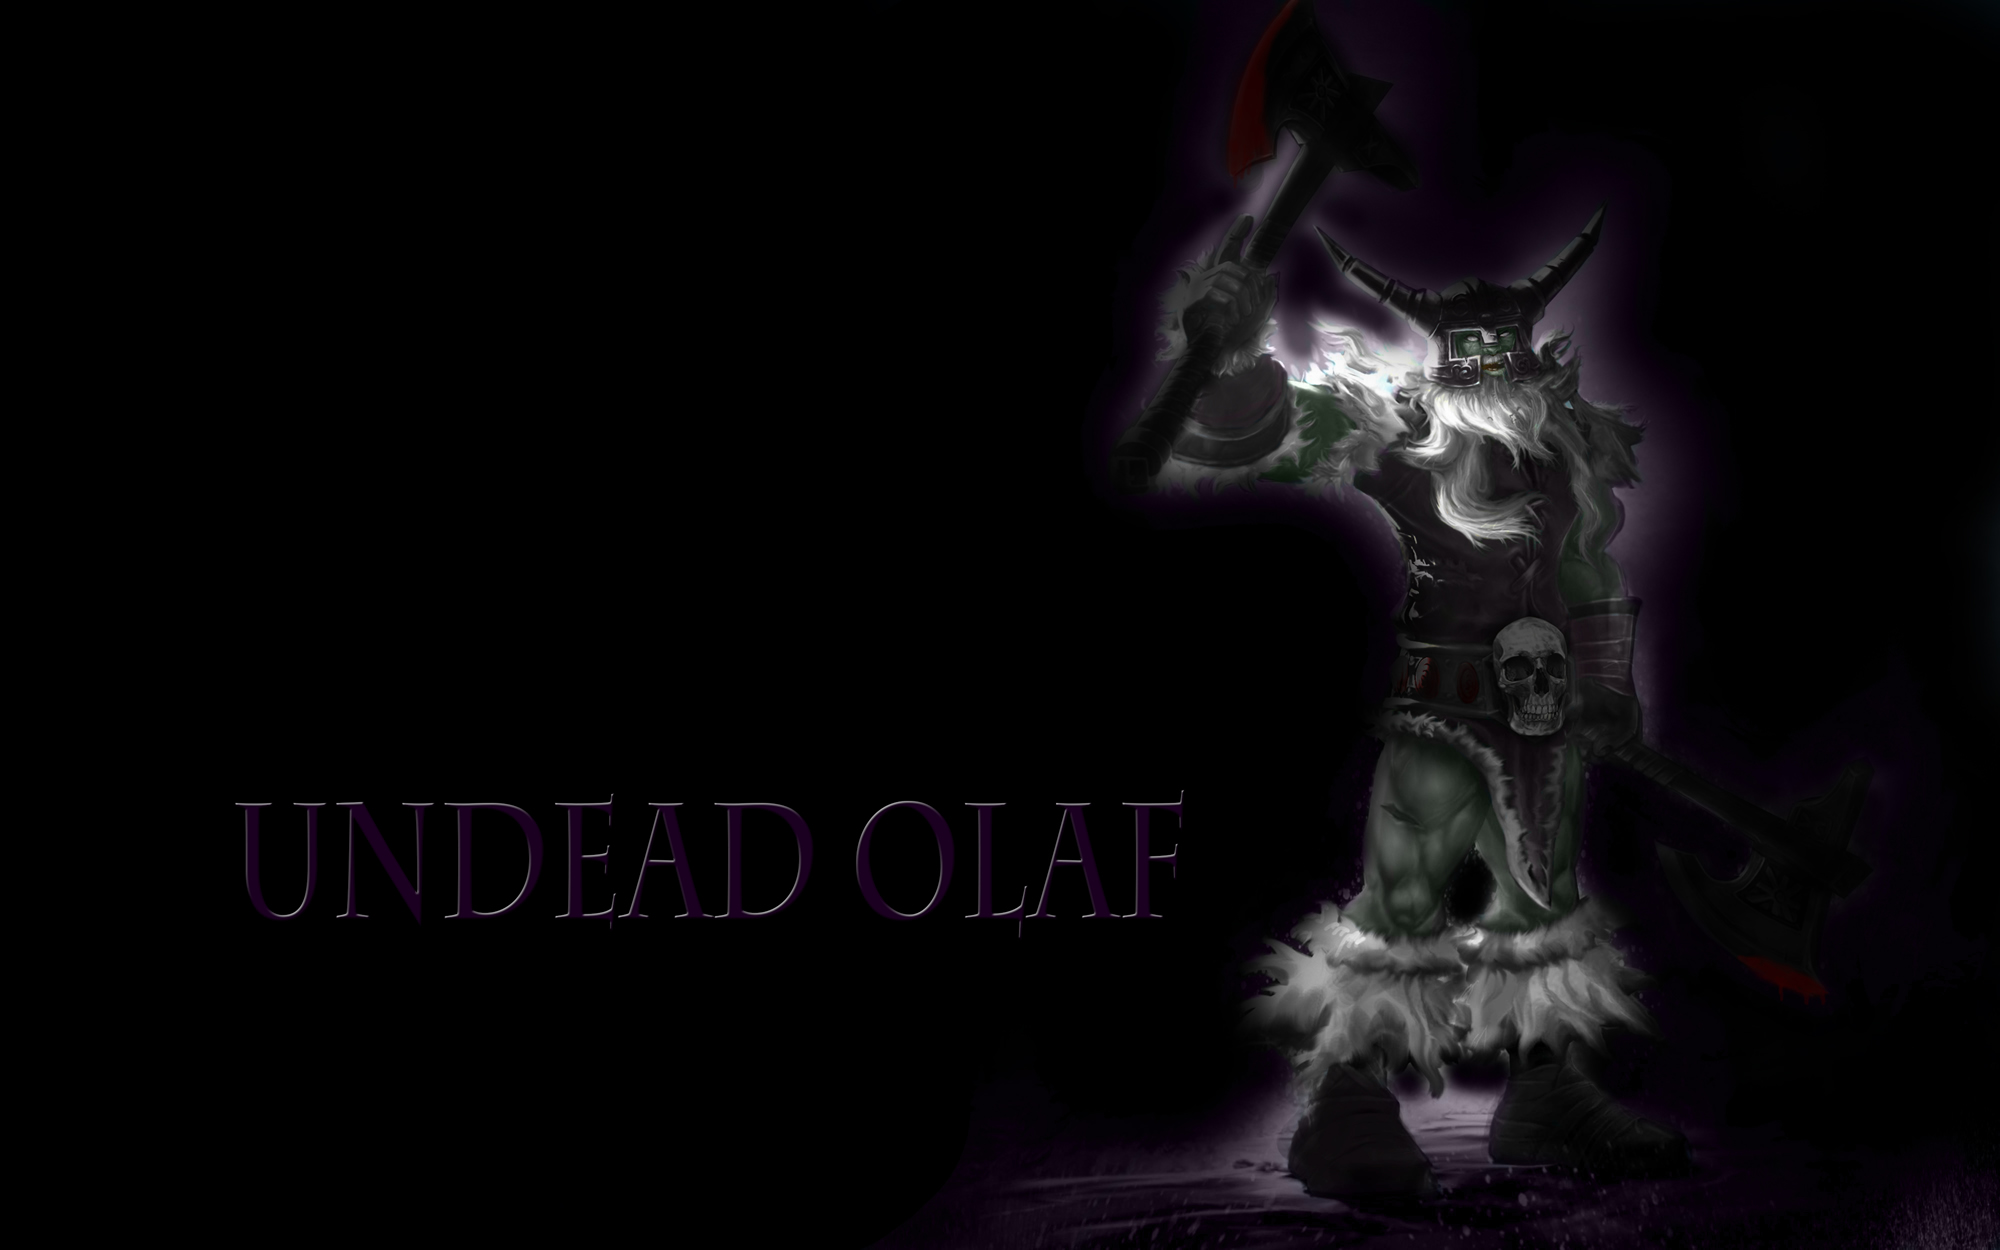 Undead Olaf Wallpaper